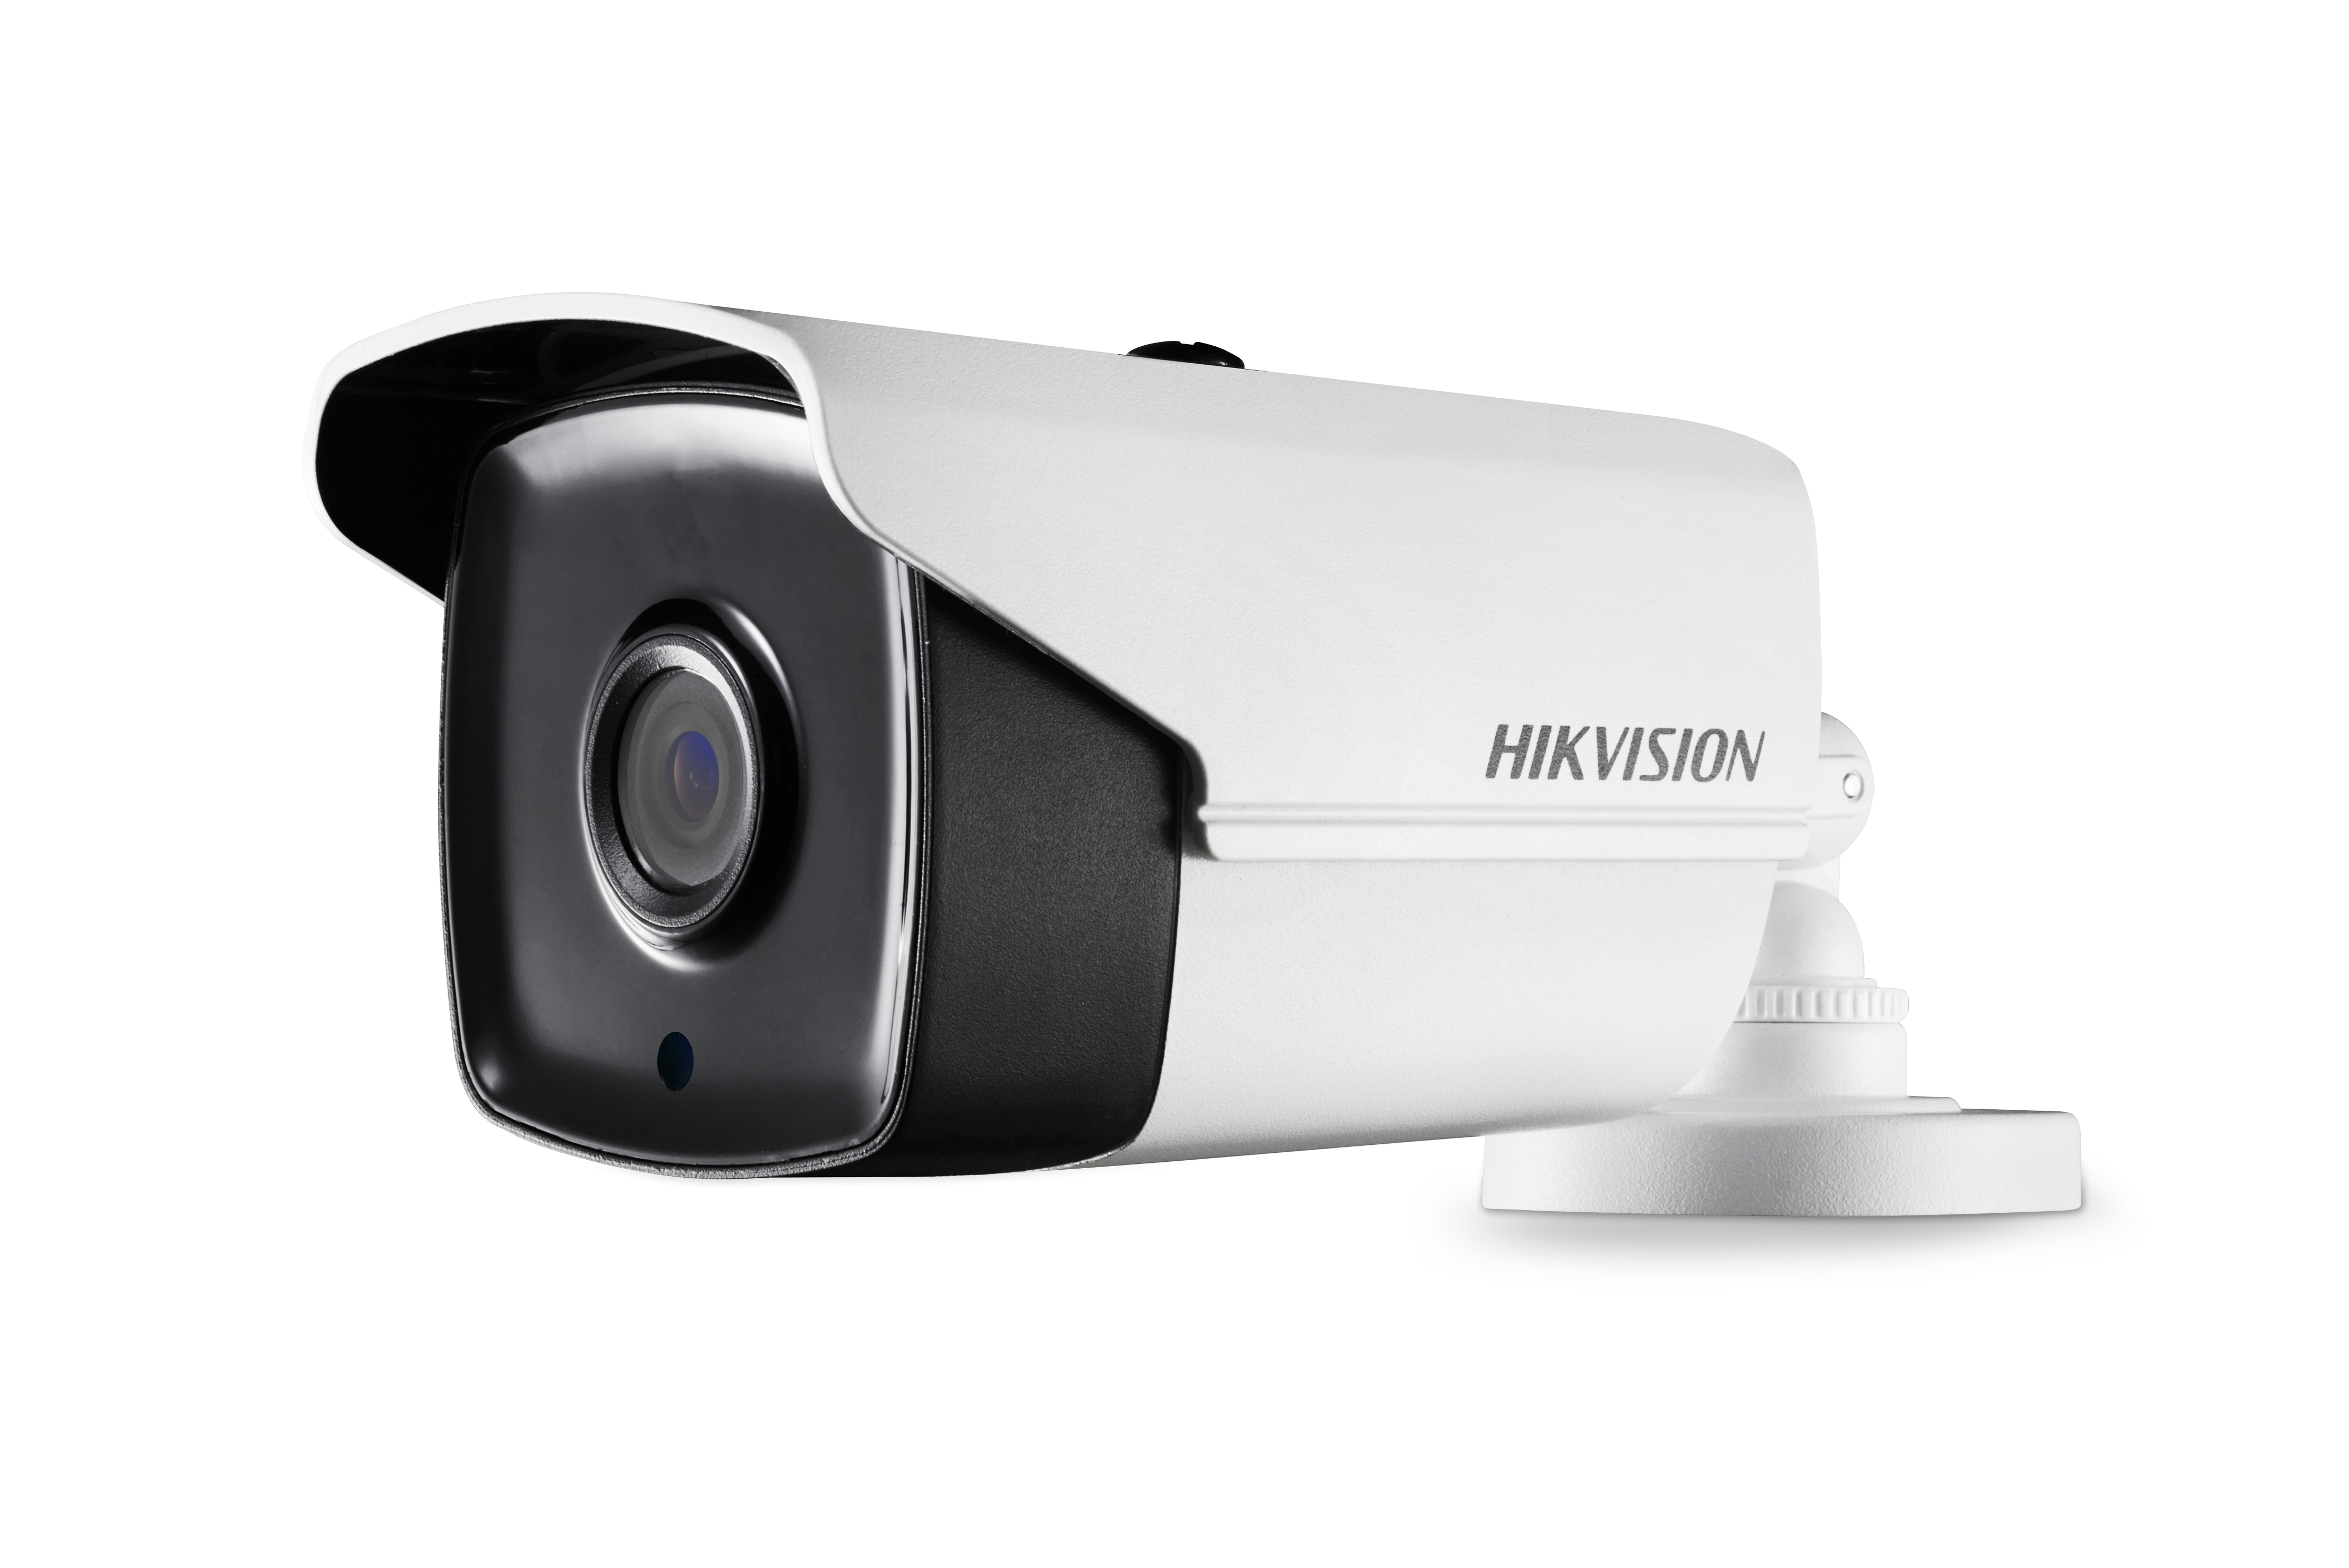 Hikvision DS-2CE16C0T-IT3 2.8mm